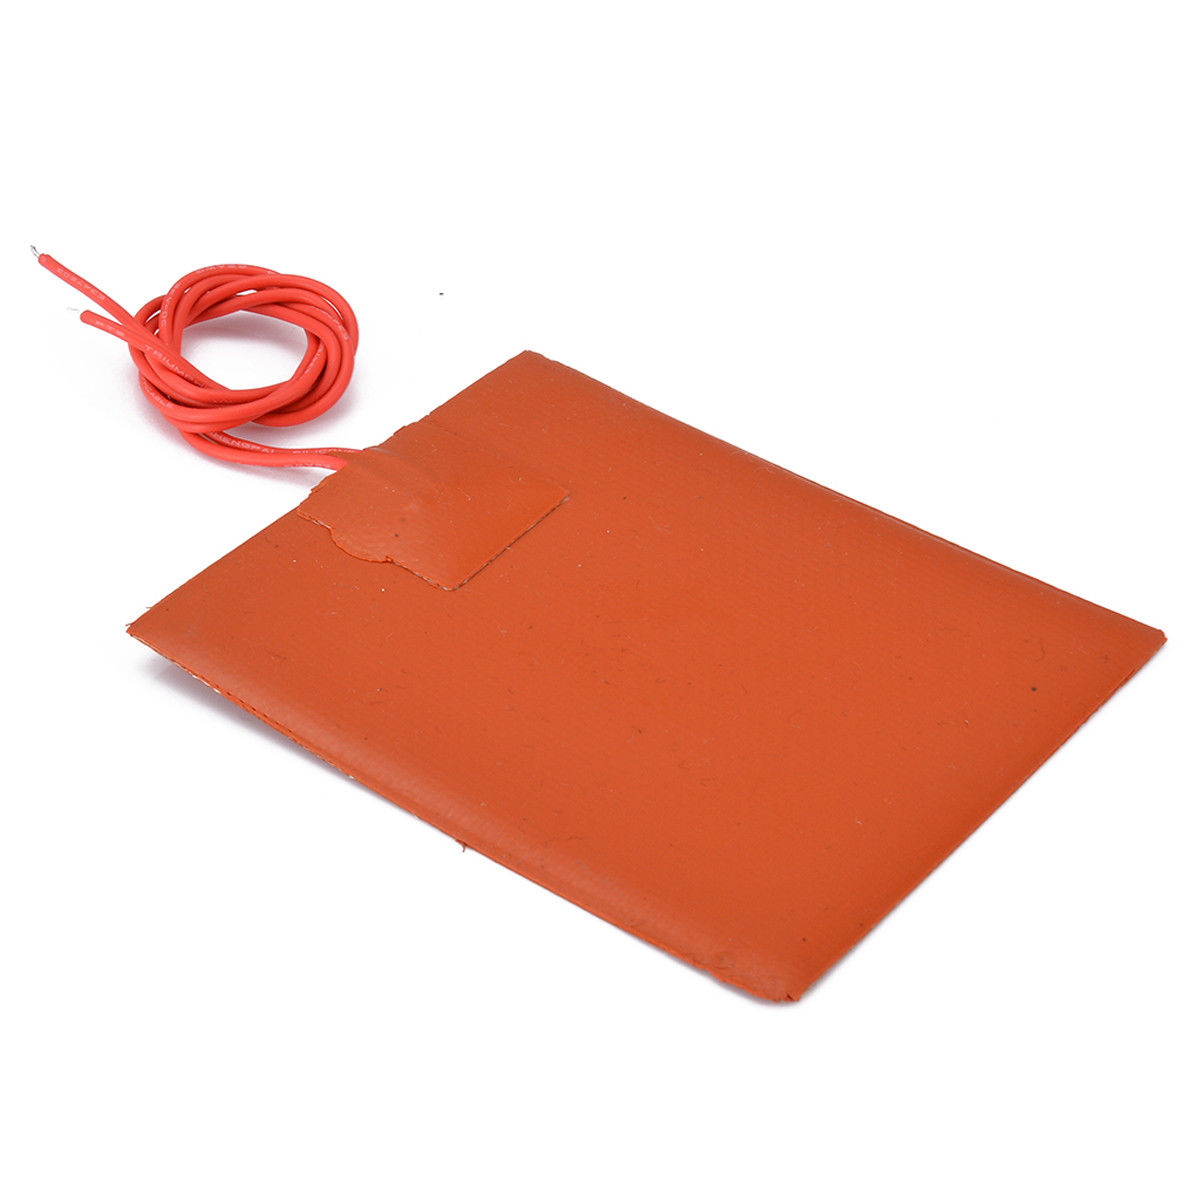 High Quality Heating Pad 12V DC 80x100mm 20W Flexible Waterproof Silicon Heater Pad For 3D Printer Heater